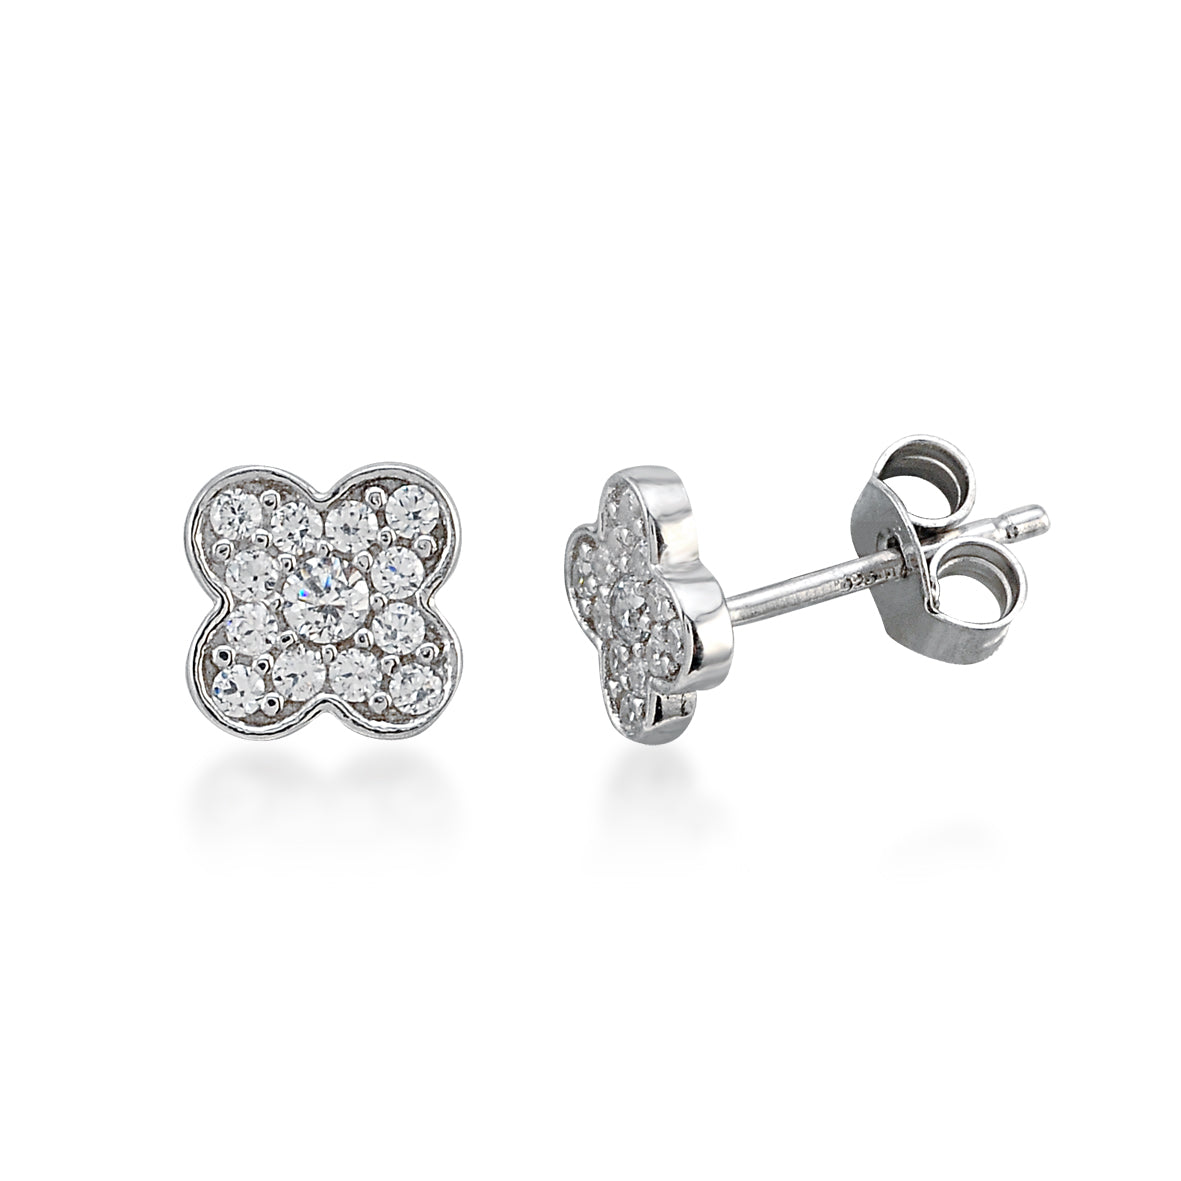 MINI CLOVERLEAF STUDS SILVER - Wonderfuletta